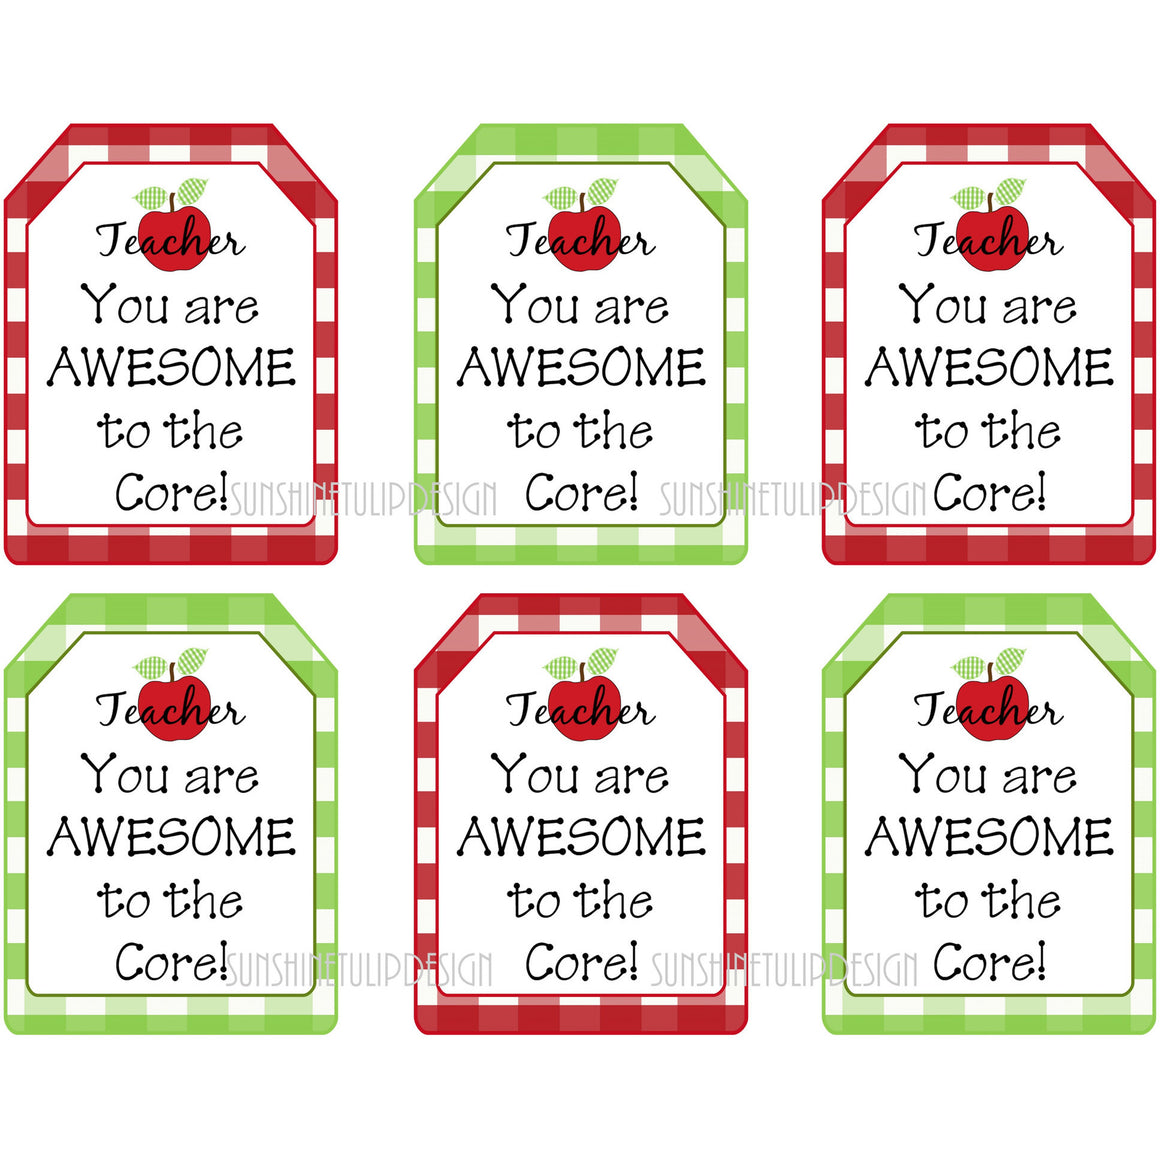 You are Awesome Printable Teacher Tags - Sunshinetulipdesign